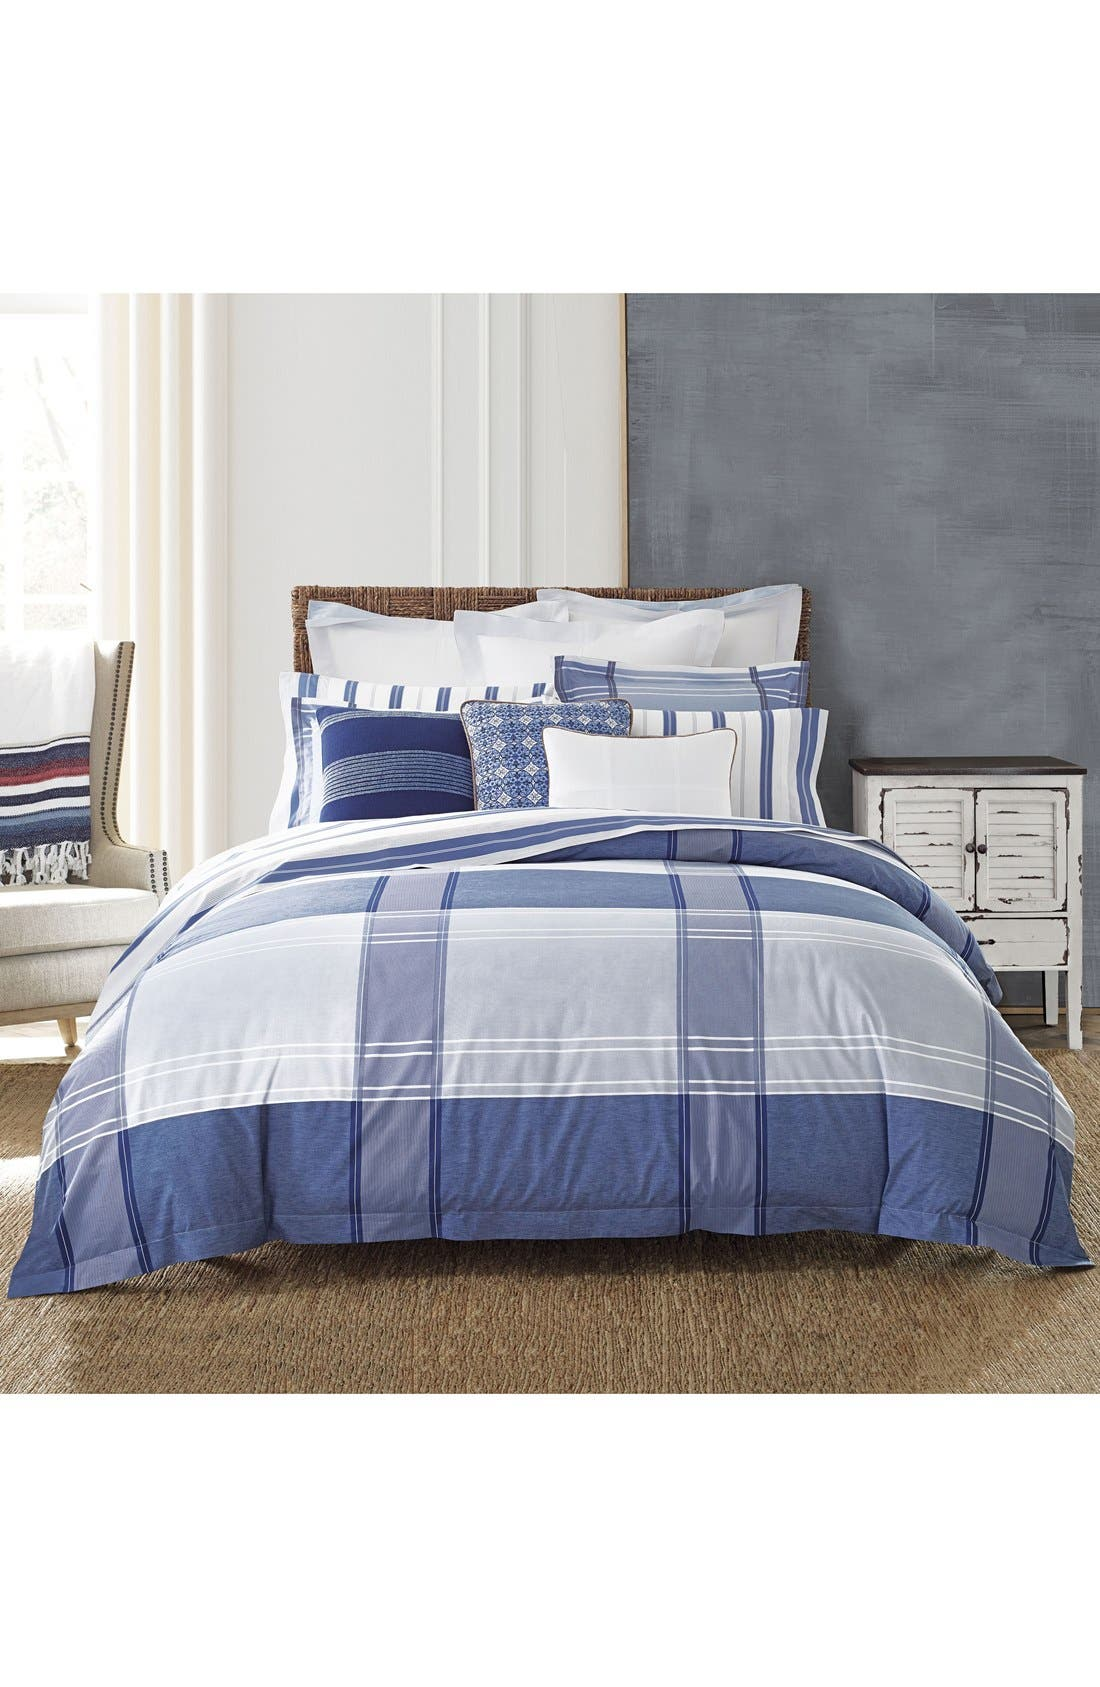 Alternate Image 1 Selected - Tommy Hilfiger Lamberts Cove Duvet Cover & Sham Set